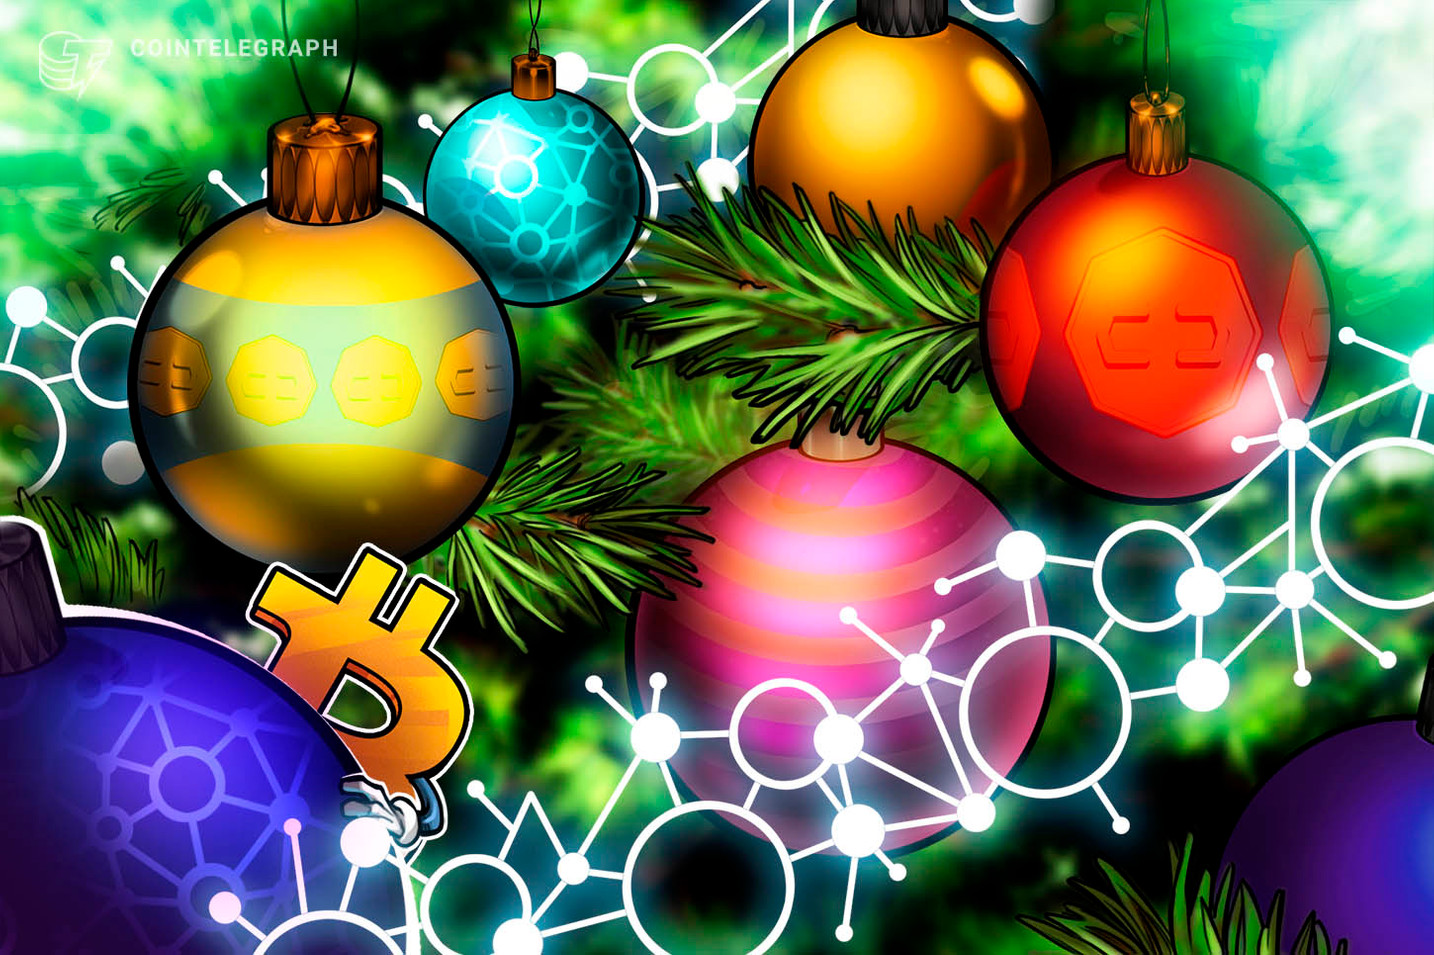 'Christmas magic,' says Chainlink user who received $11K in donations for $50K mistake